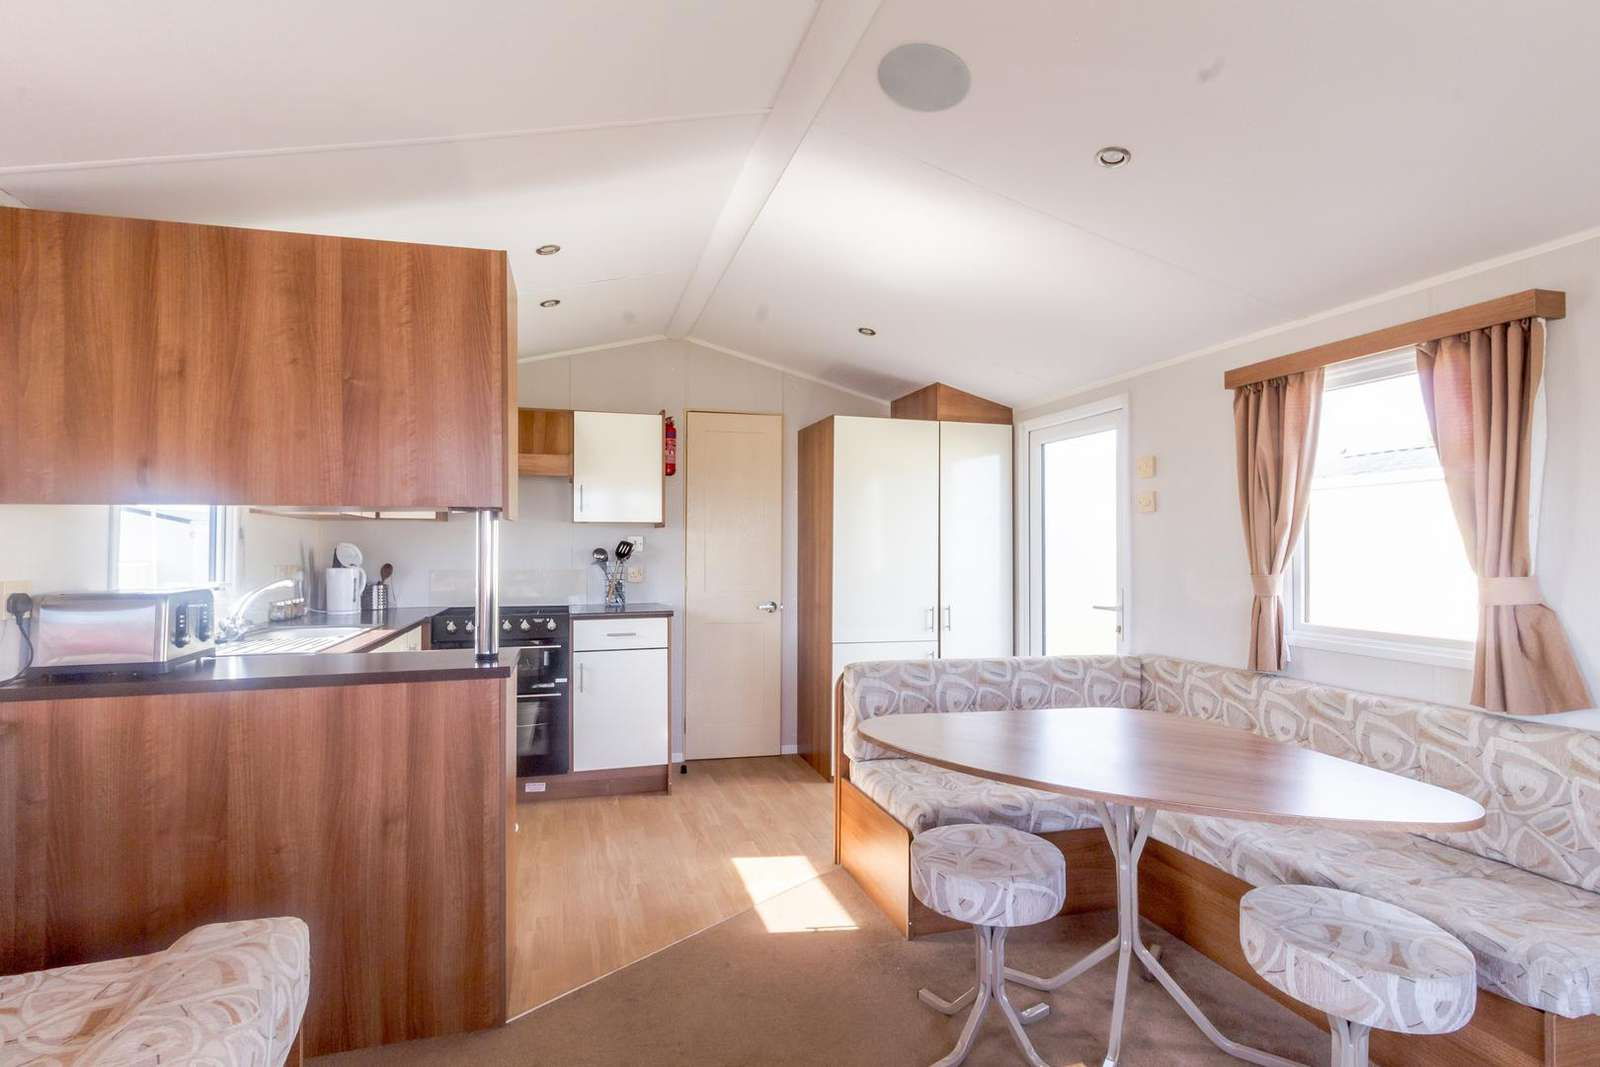 Spacious kitchen/diner, great for families!